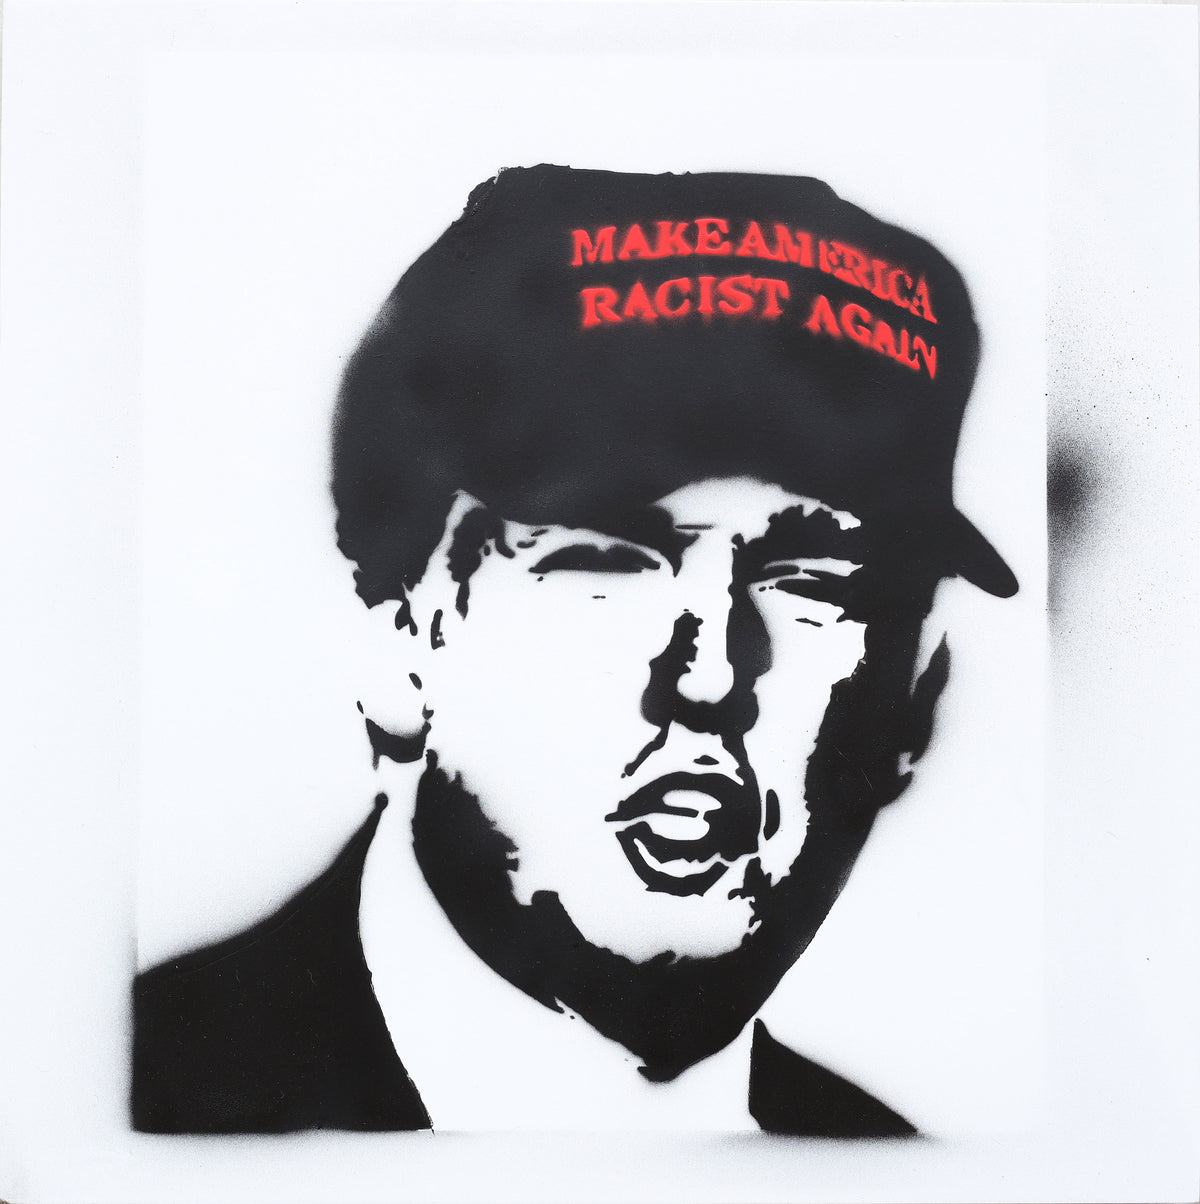 16x16 Original Artwork Make America Racist Again